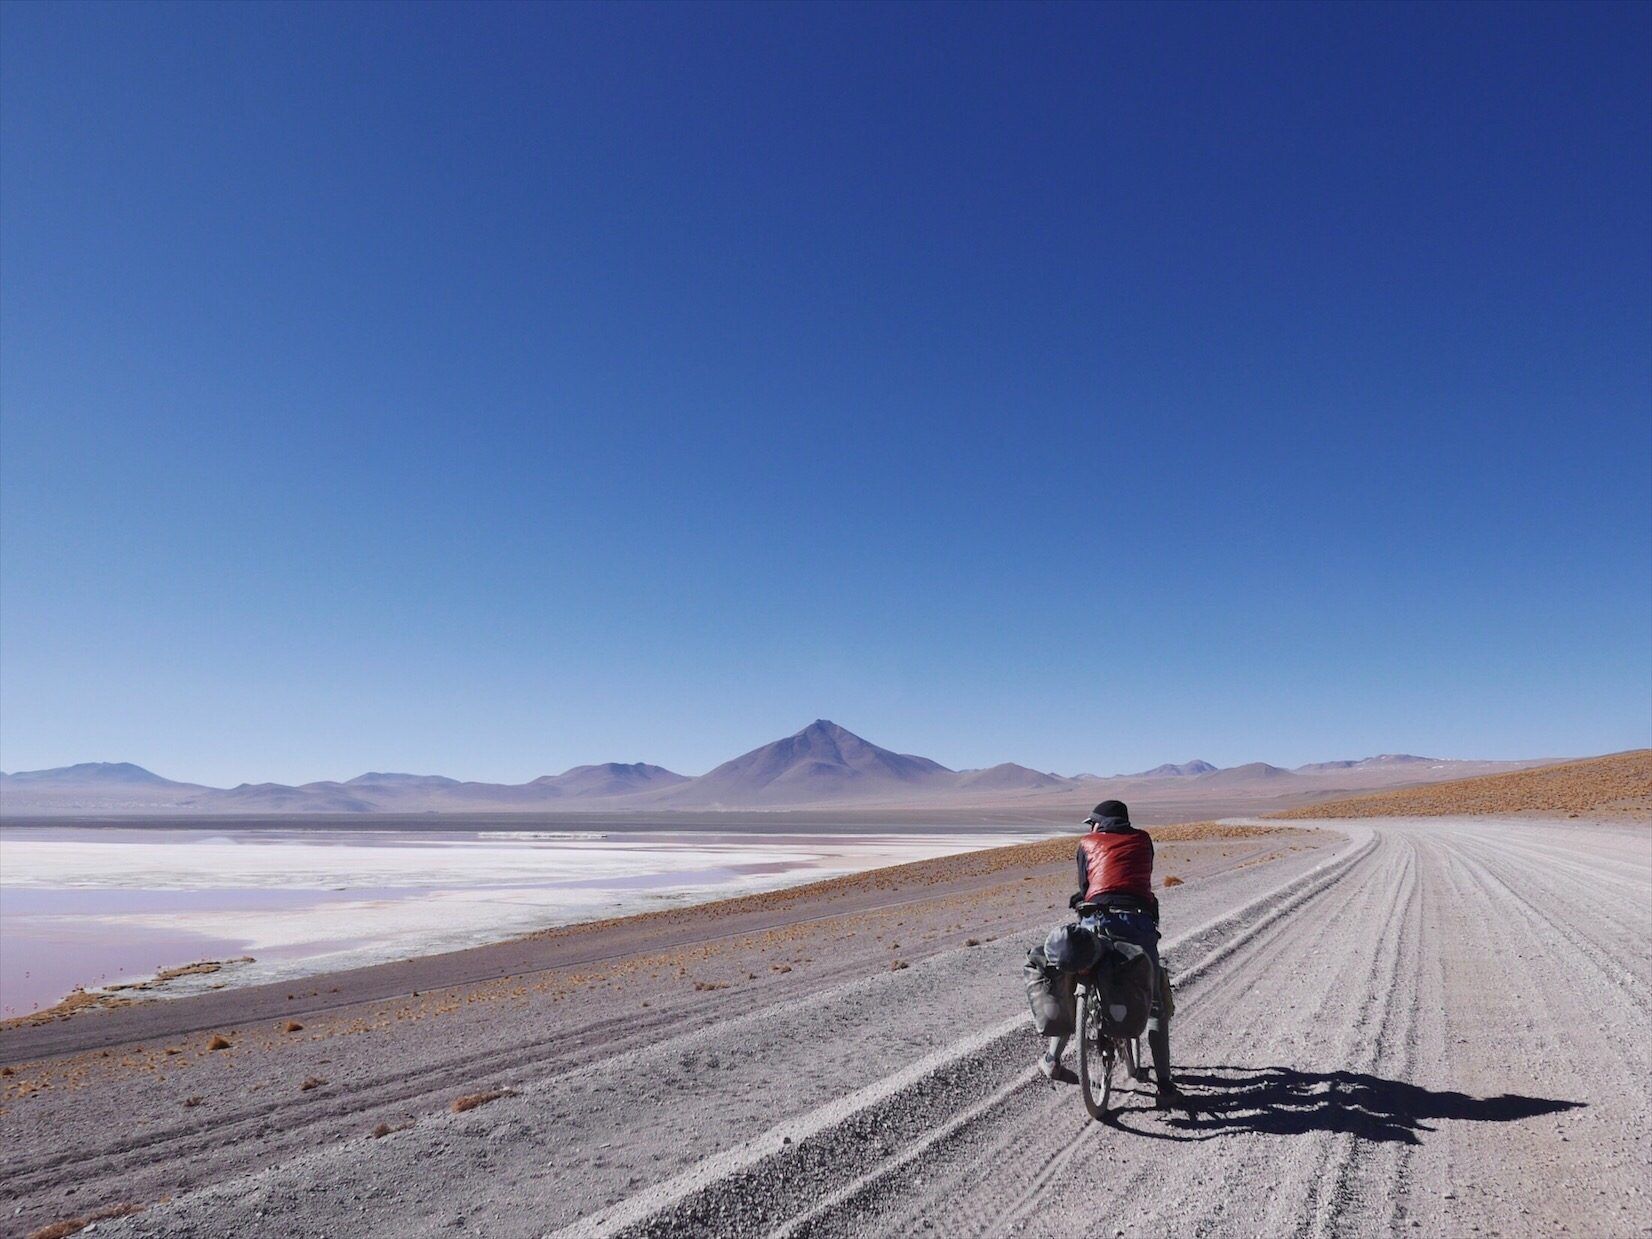 The Lagunas Route through Southwest Bolivia is famous/infamous among cyclists for its beauty and challenging roads. Looking out across a blood red lake filled with pink flamingos and icebergs is almost worth spending eight days pushing through half a foot of kitty litter.